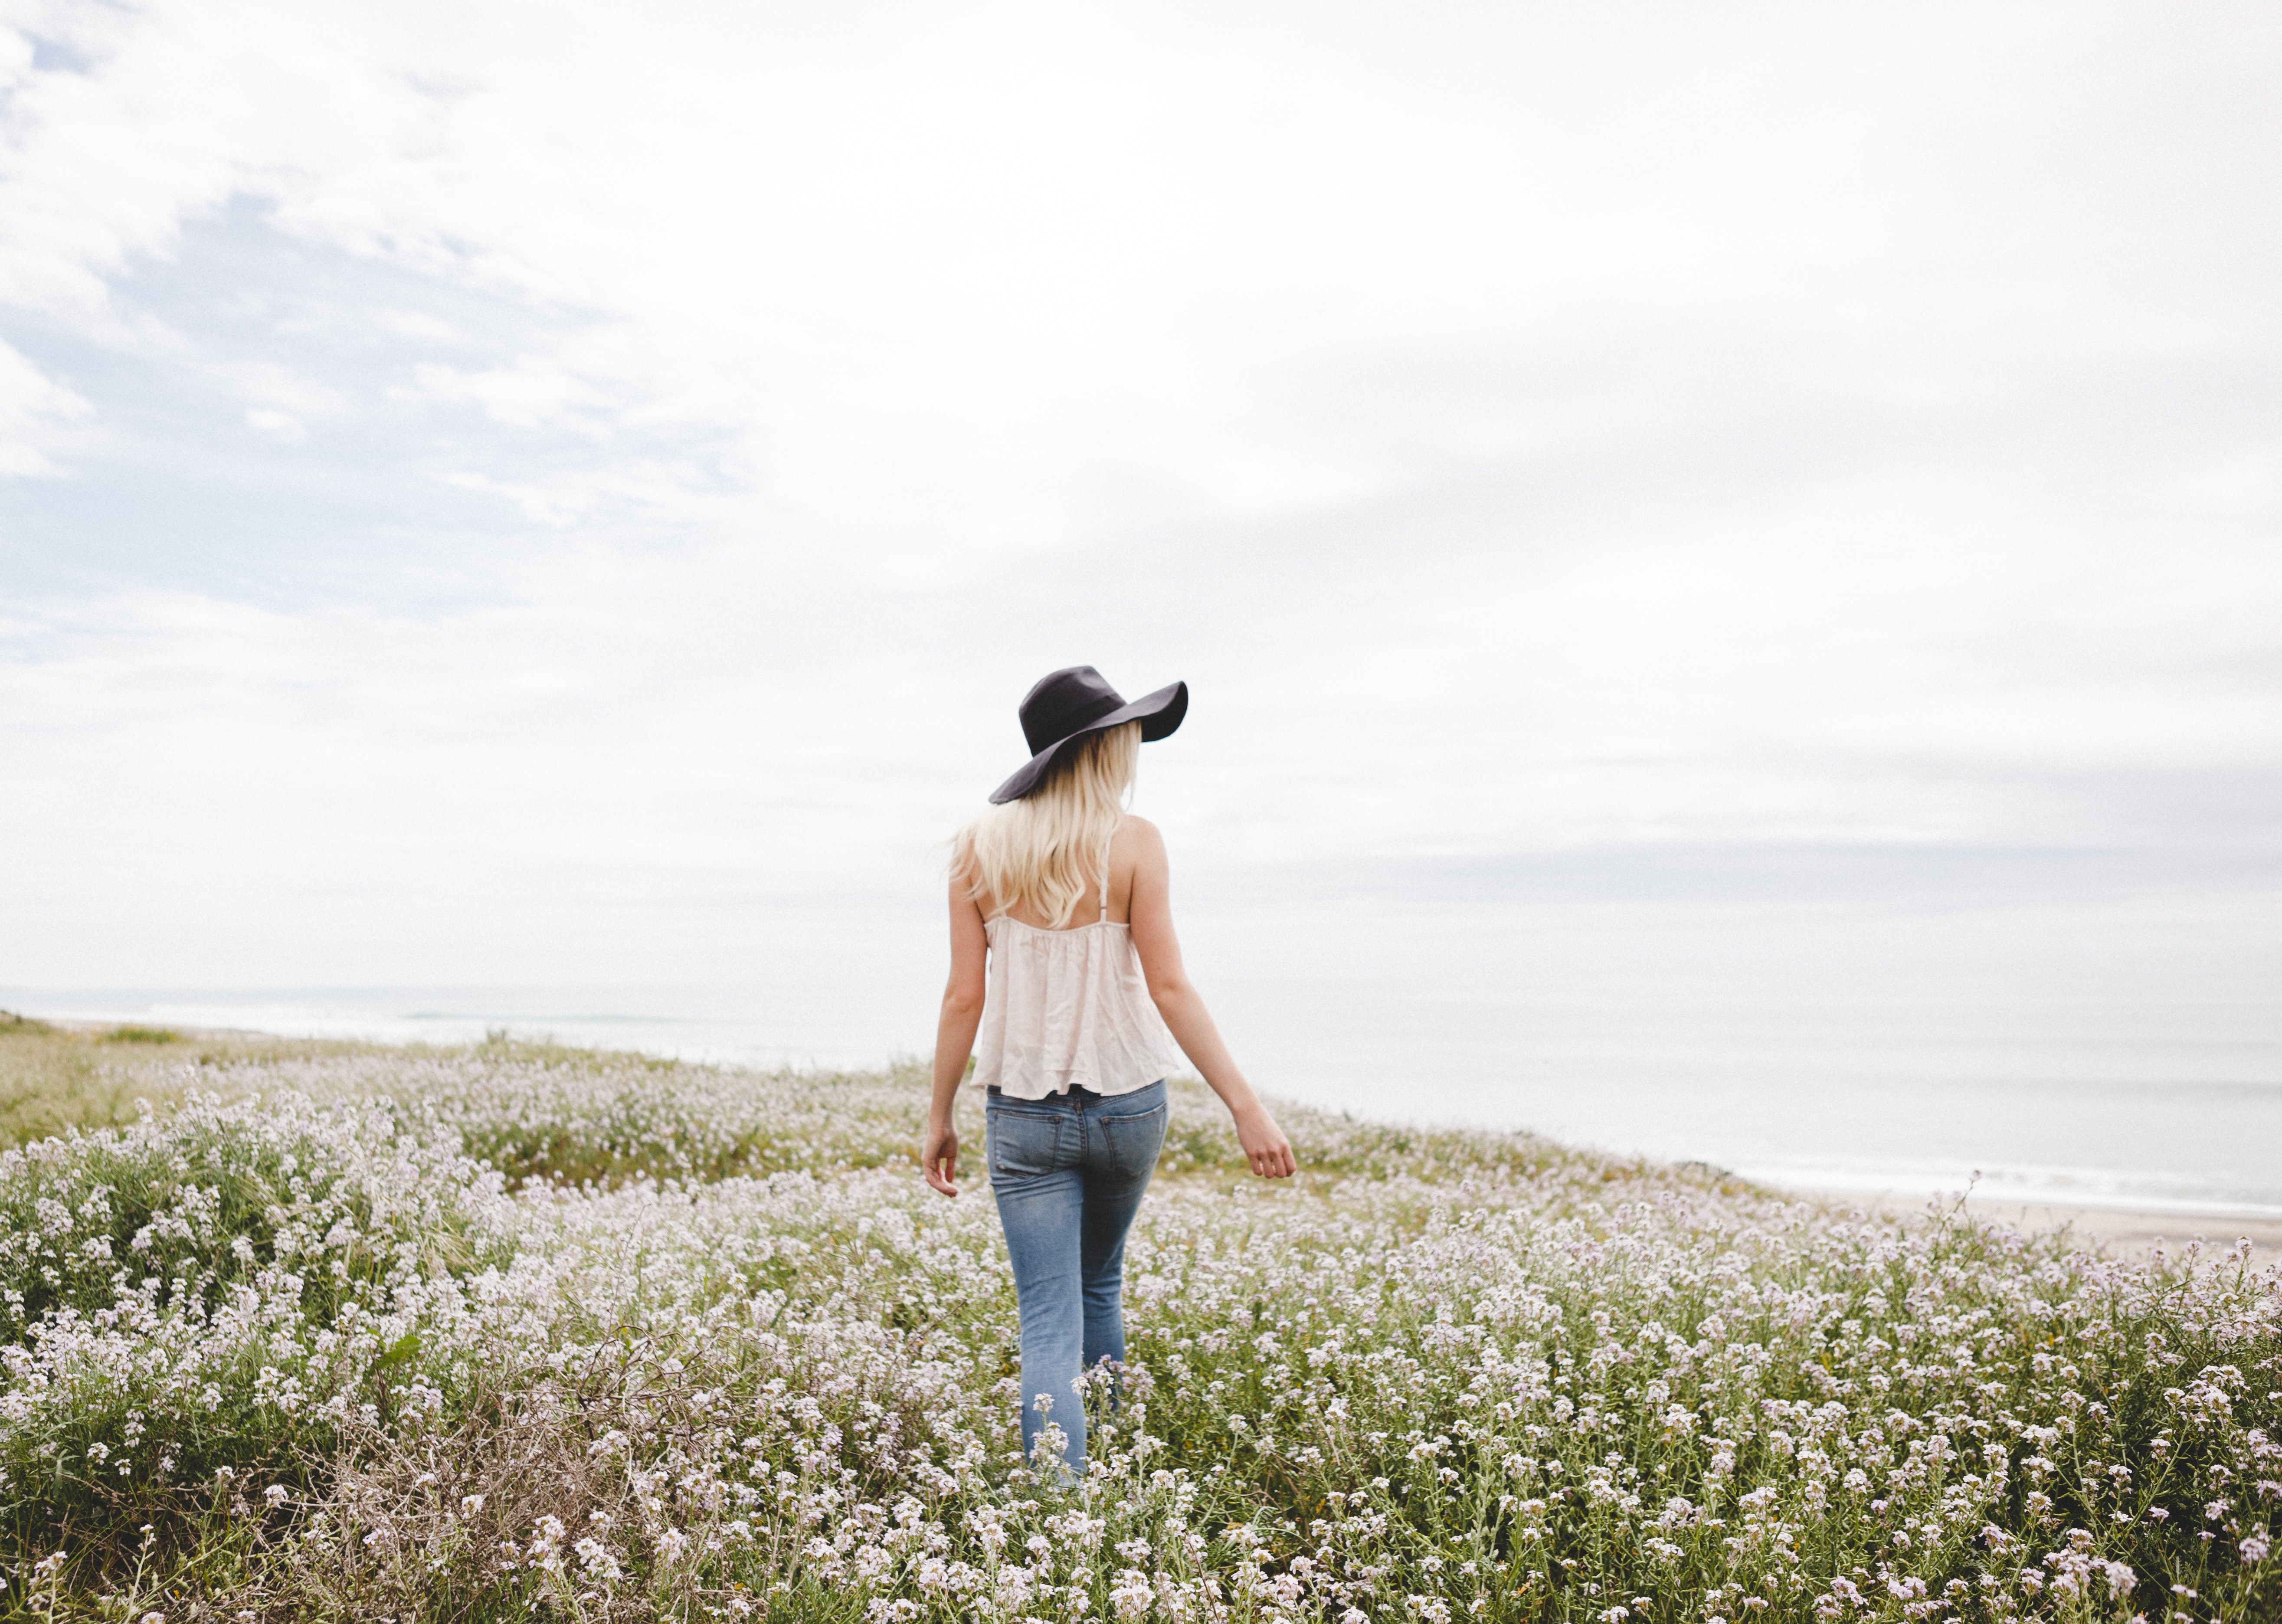 woman wearing black hat walking across the flower field during day time